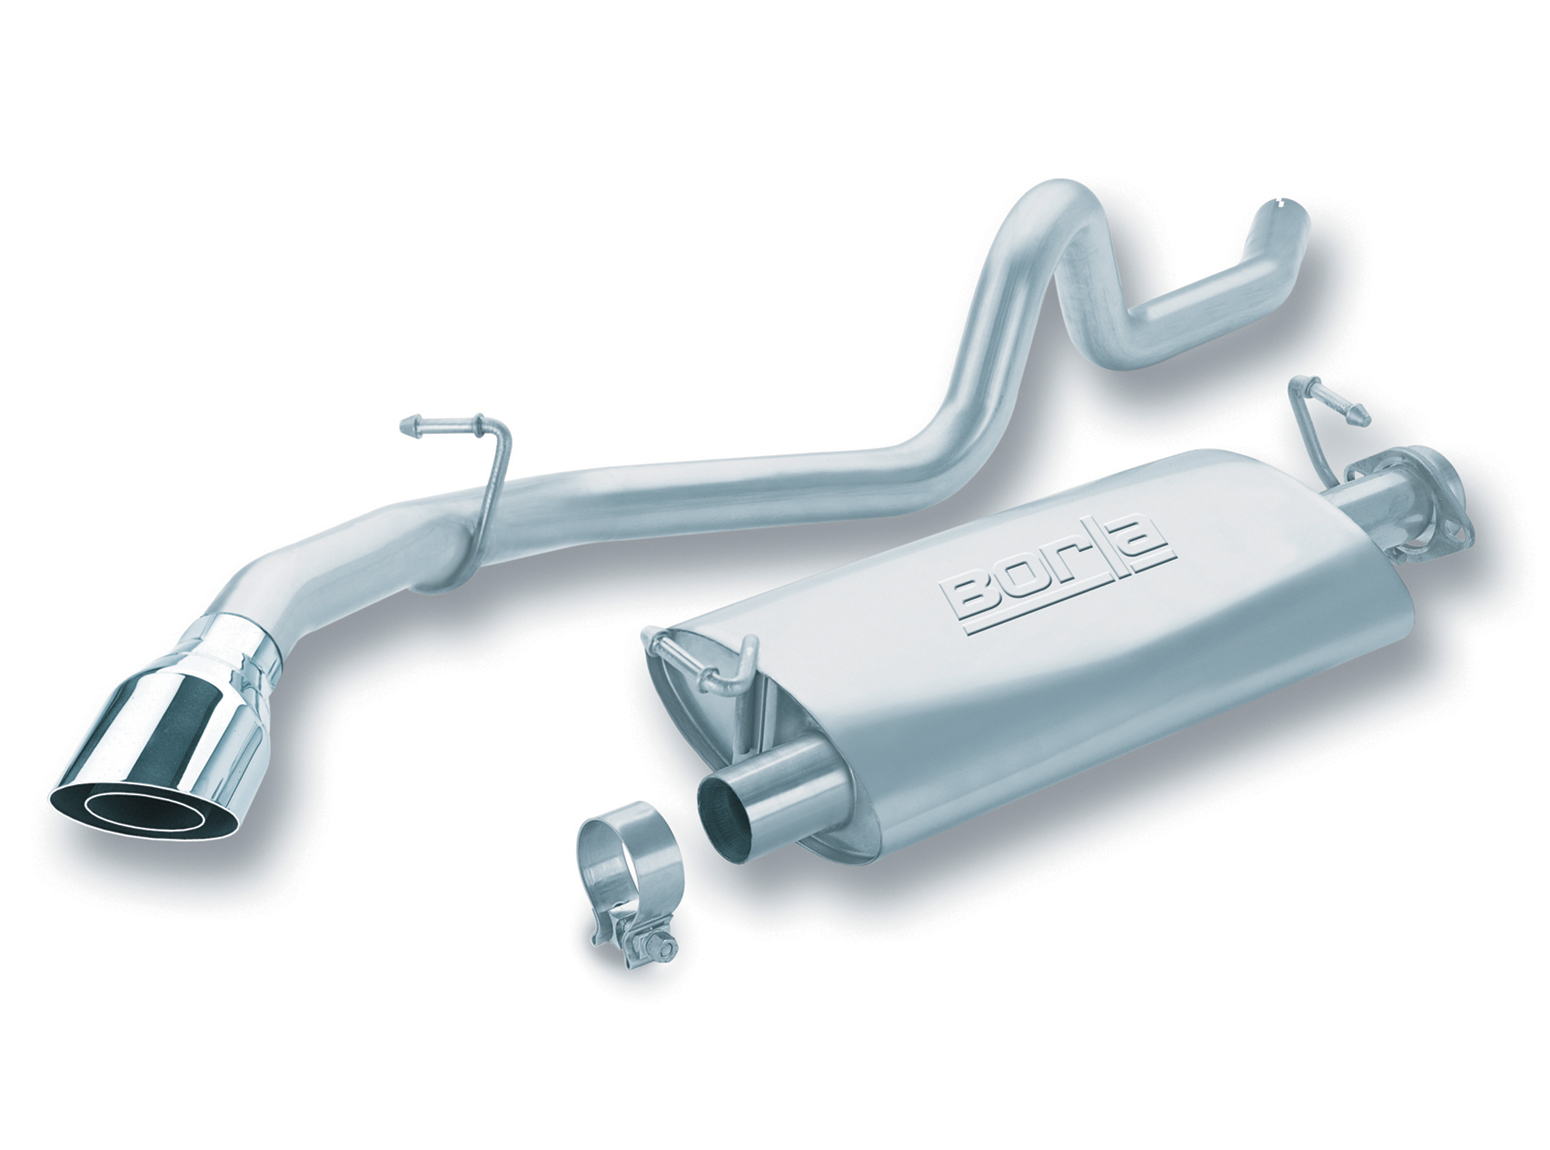 "Land Rover Range Rover 3.9l/4.2l V8 1990-1995 Borla 2.25"" Cat-Back Exhaust System - Single Round Rolled Angle-Cut Lined"